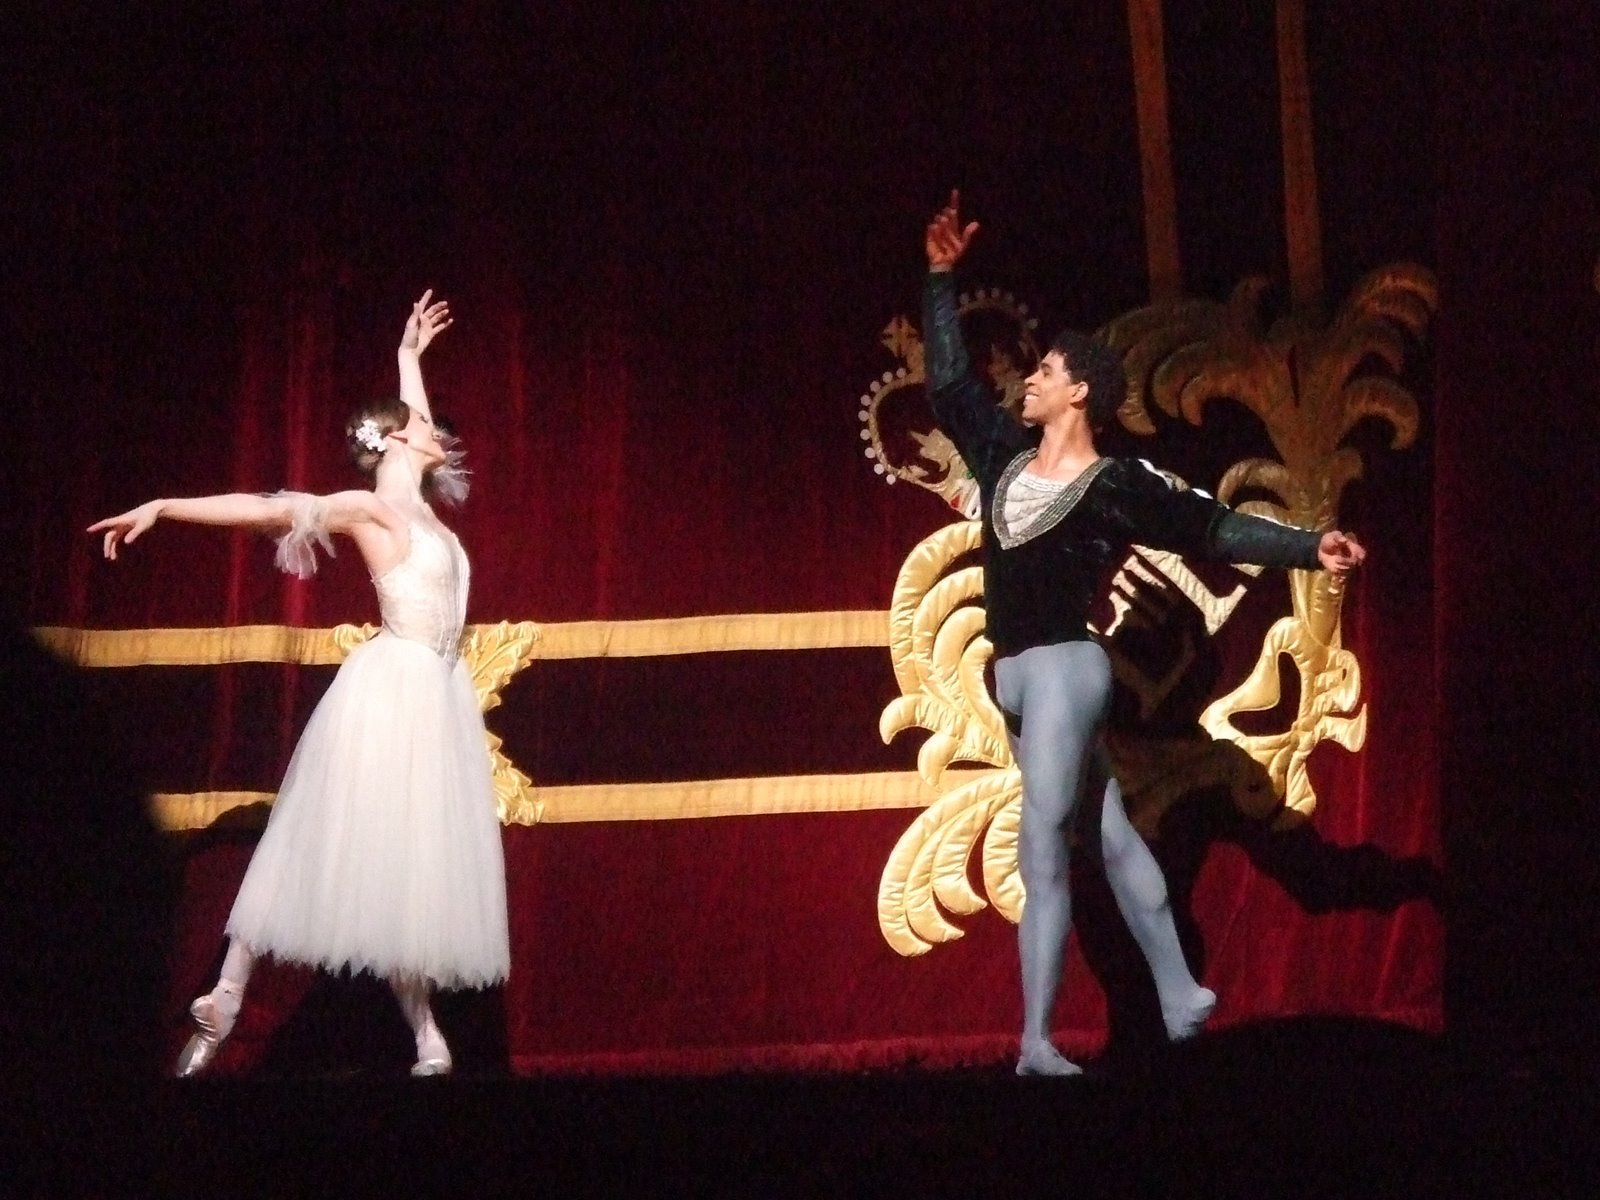 Royal Ballet dancers in Giselle